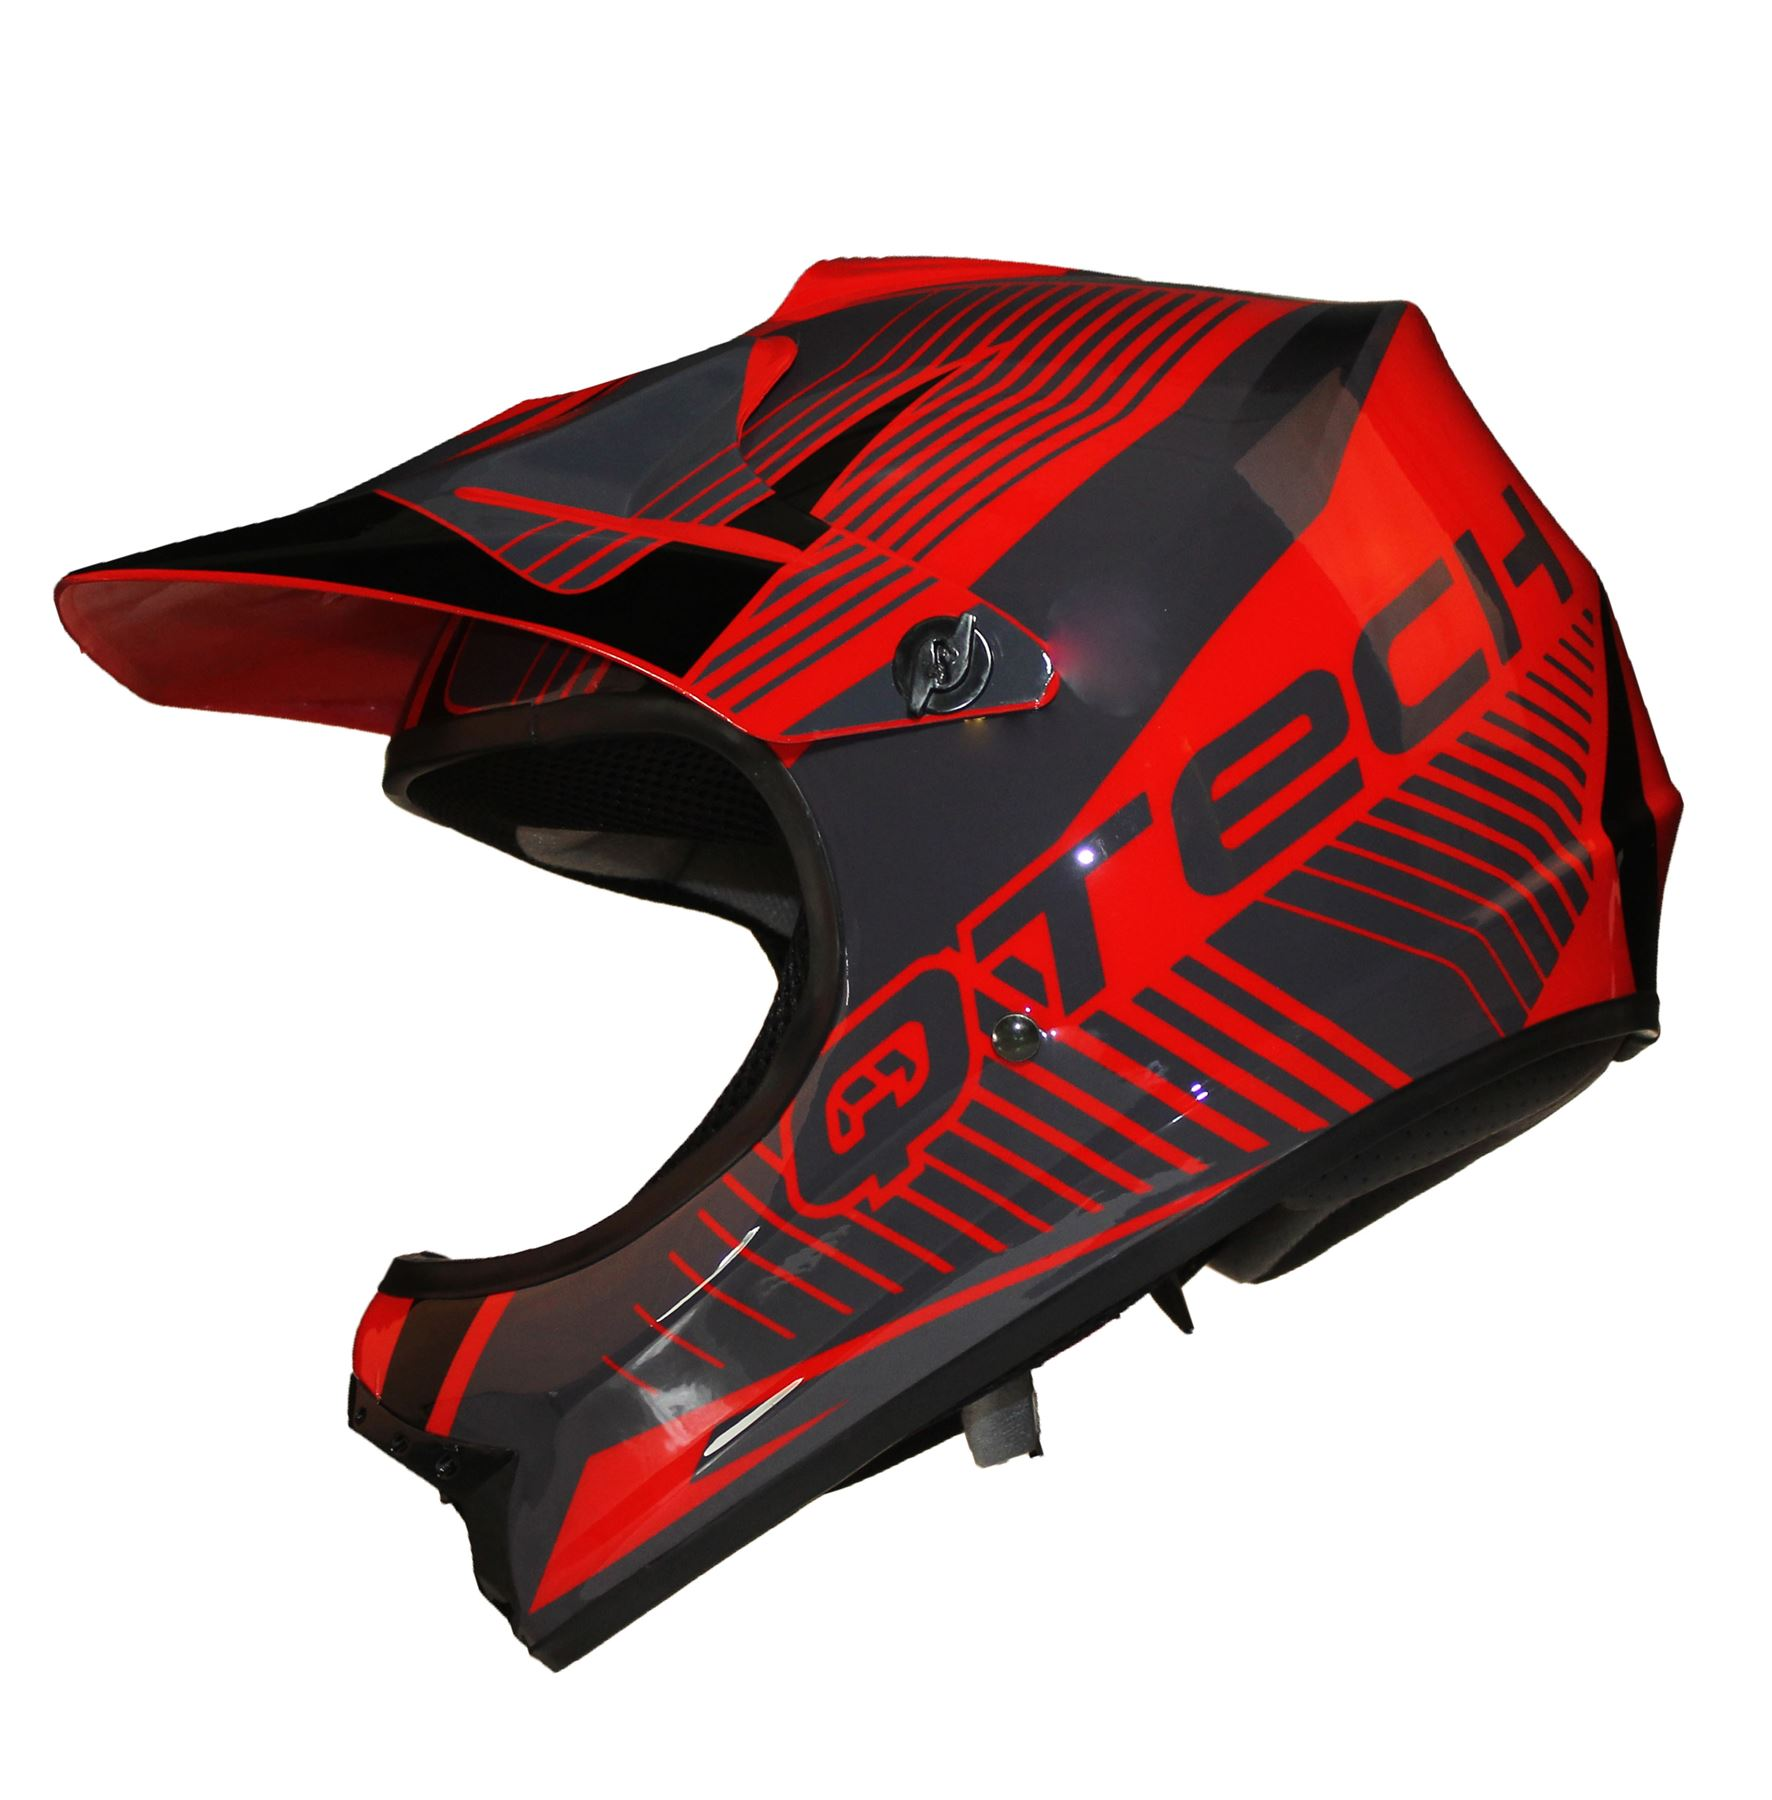 casque de moto pour enfant motocross cross off road noir mat atv quad ebay. Black Bedroom Furniture Sets. Home Design Ideas